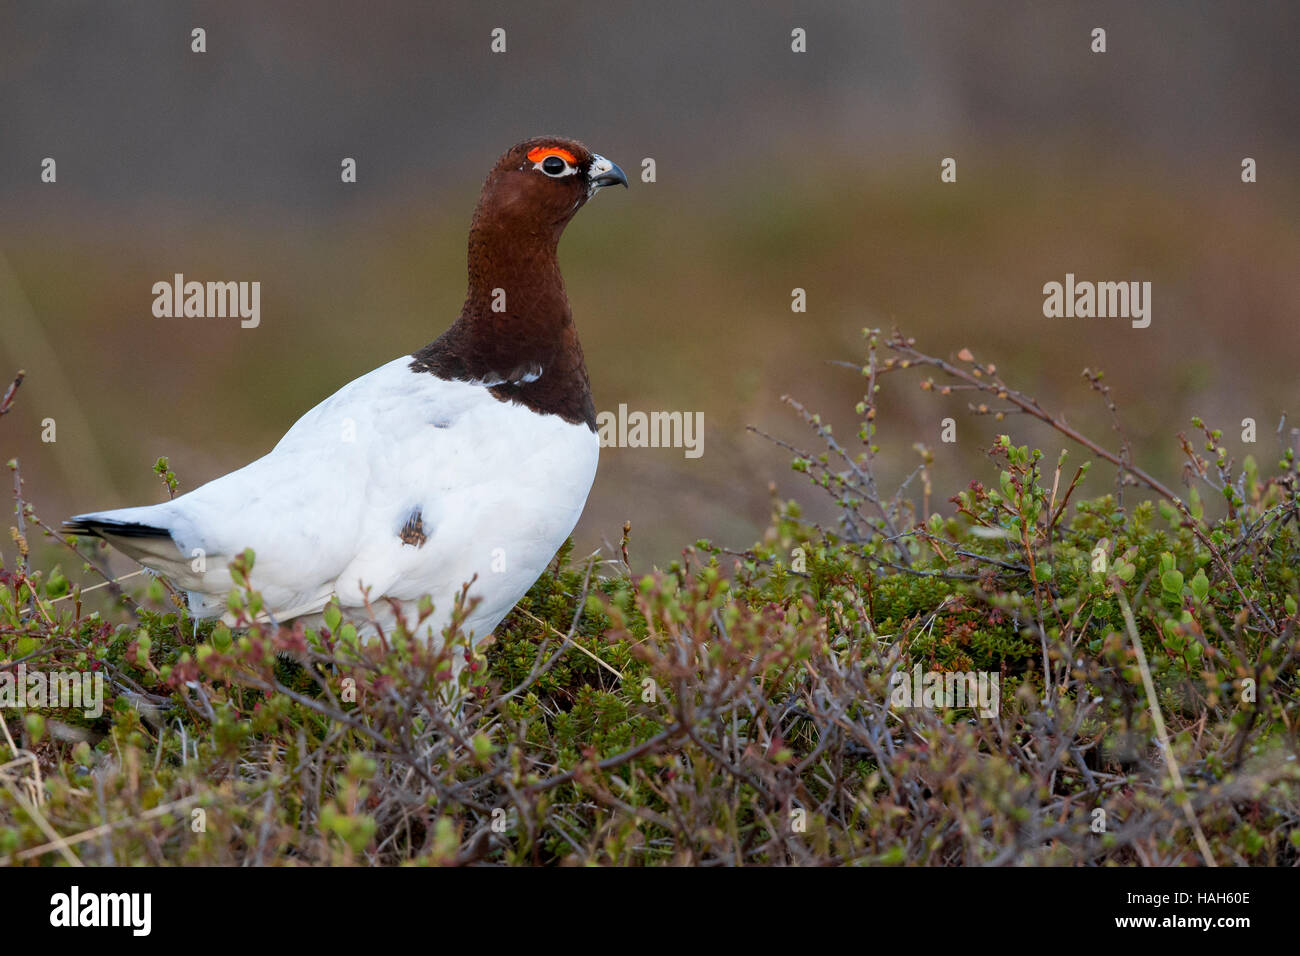 Willow Ptarmigan (Lagopus lagopus), adult male standing on the ground - Stock Image